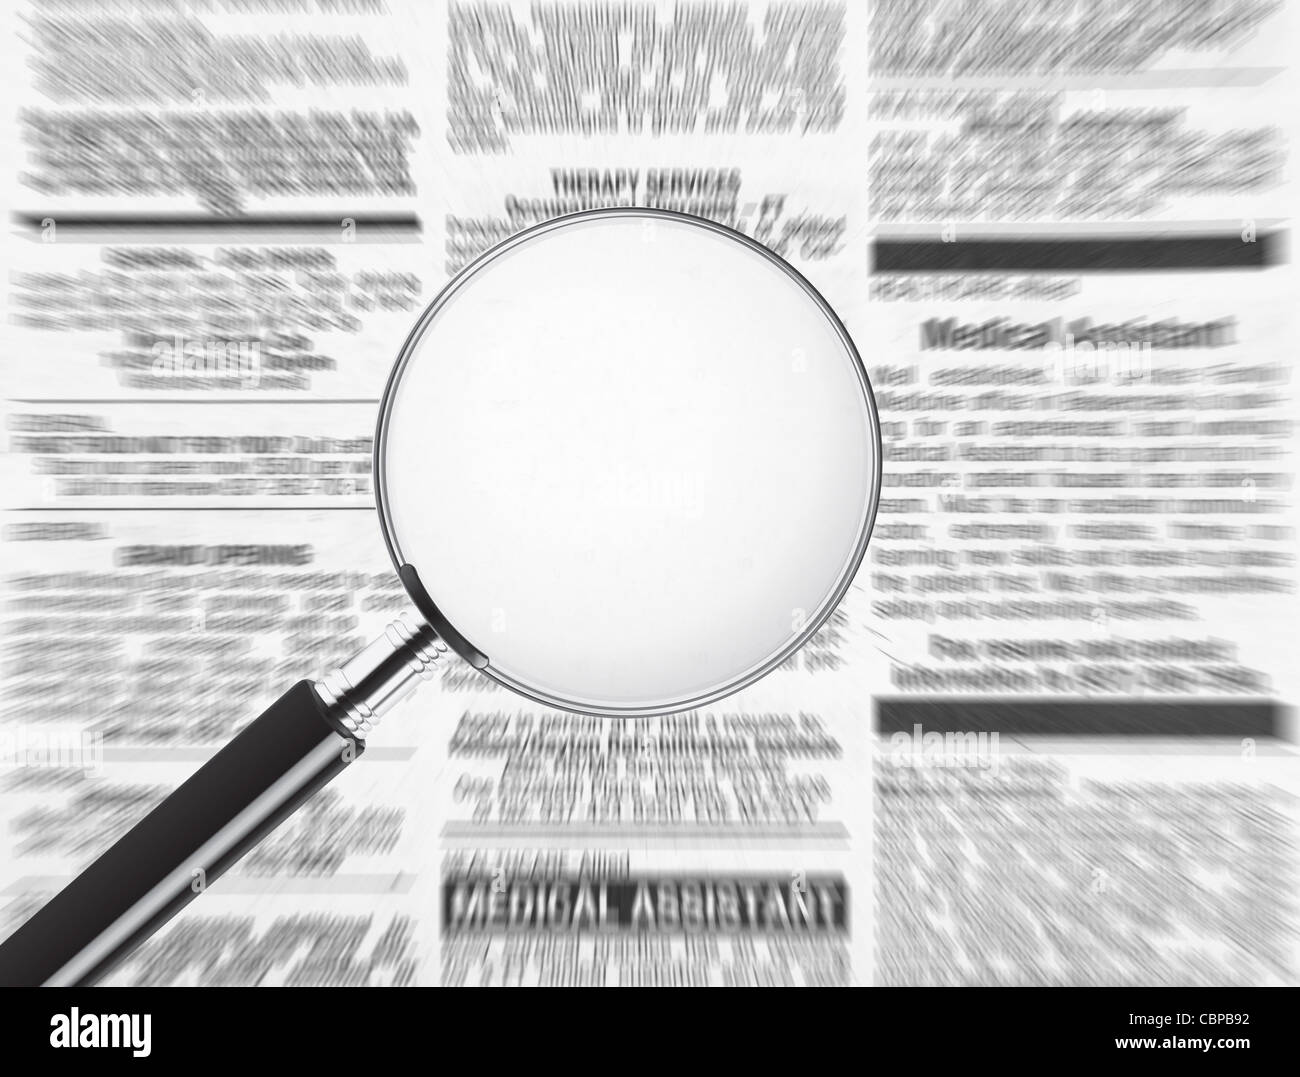 Blank magnifying glass over newspaper. Plenty of room to add text to display your message - Stock Image